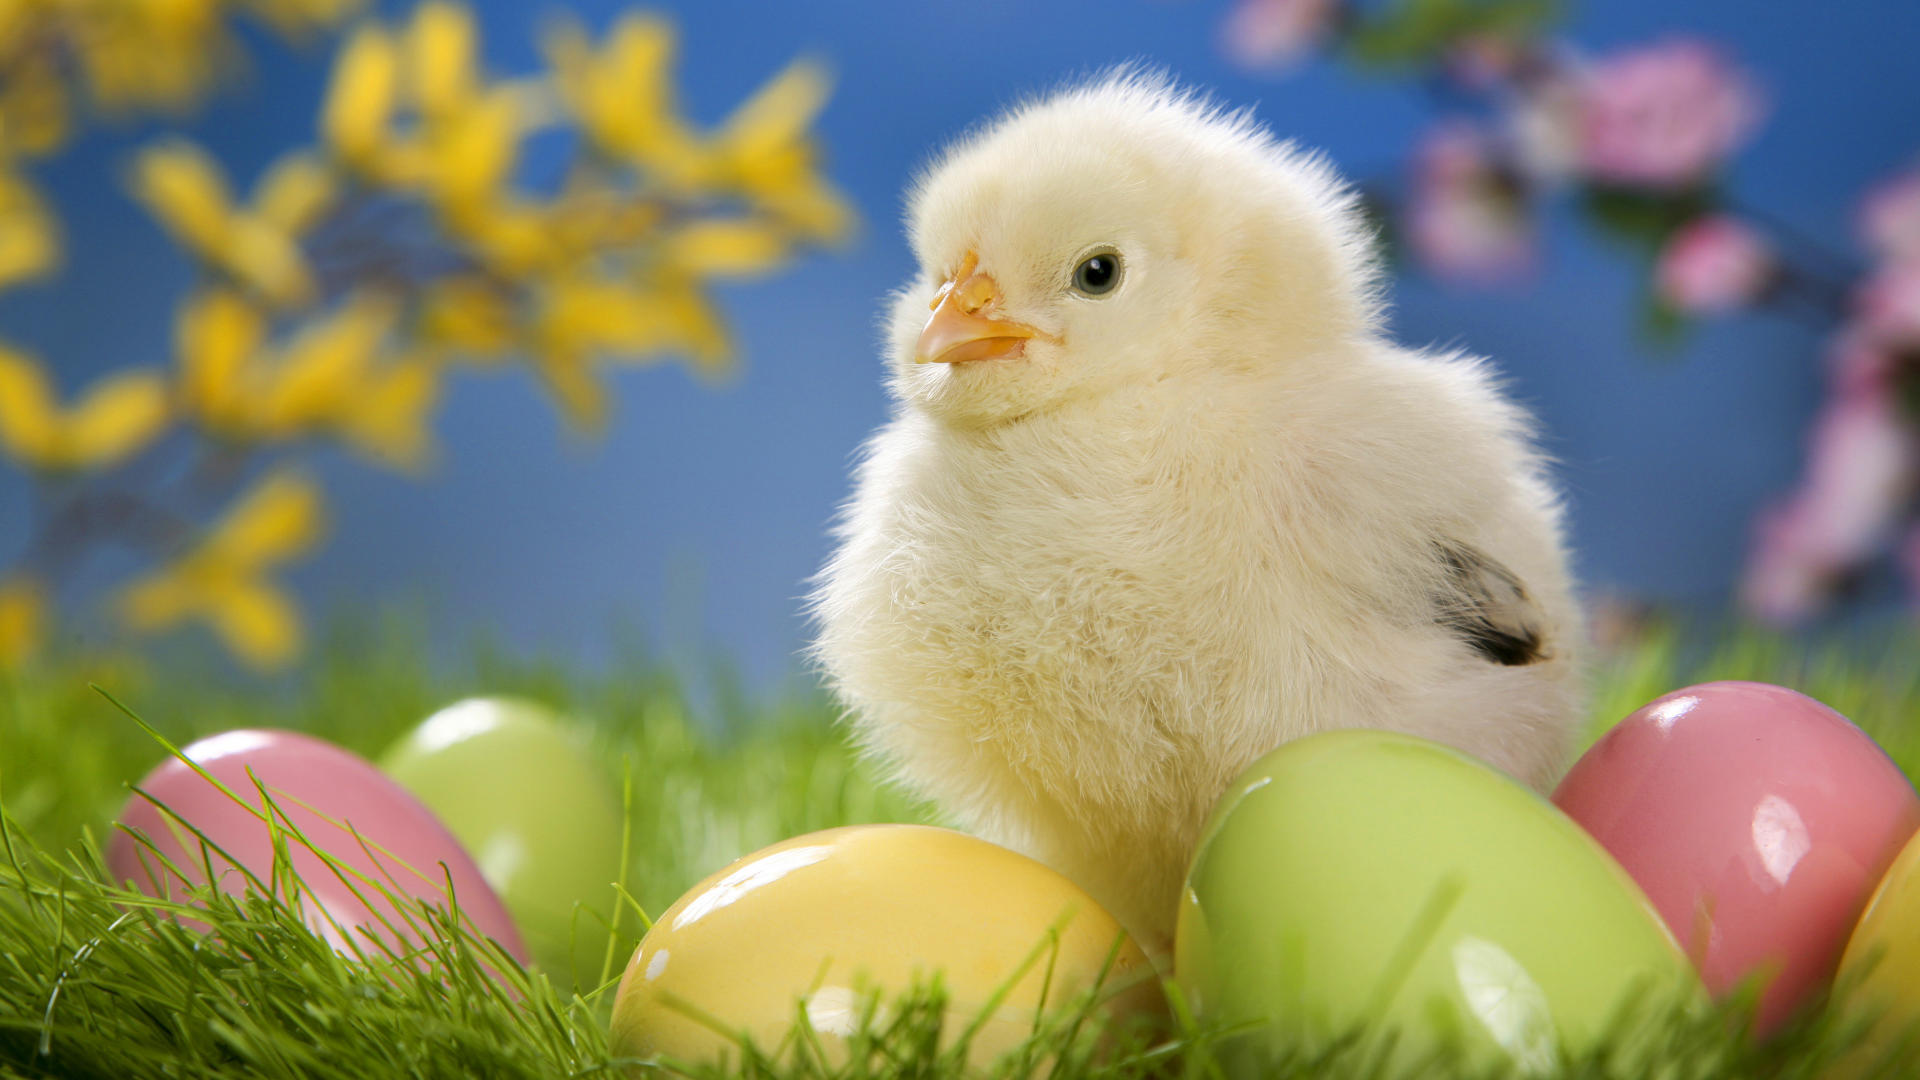 21486 download wallpaper Animals, Birds screensavers and pictures for free